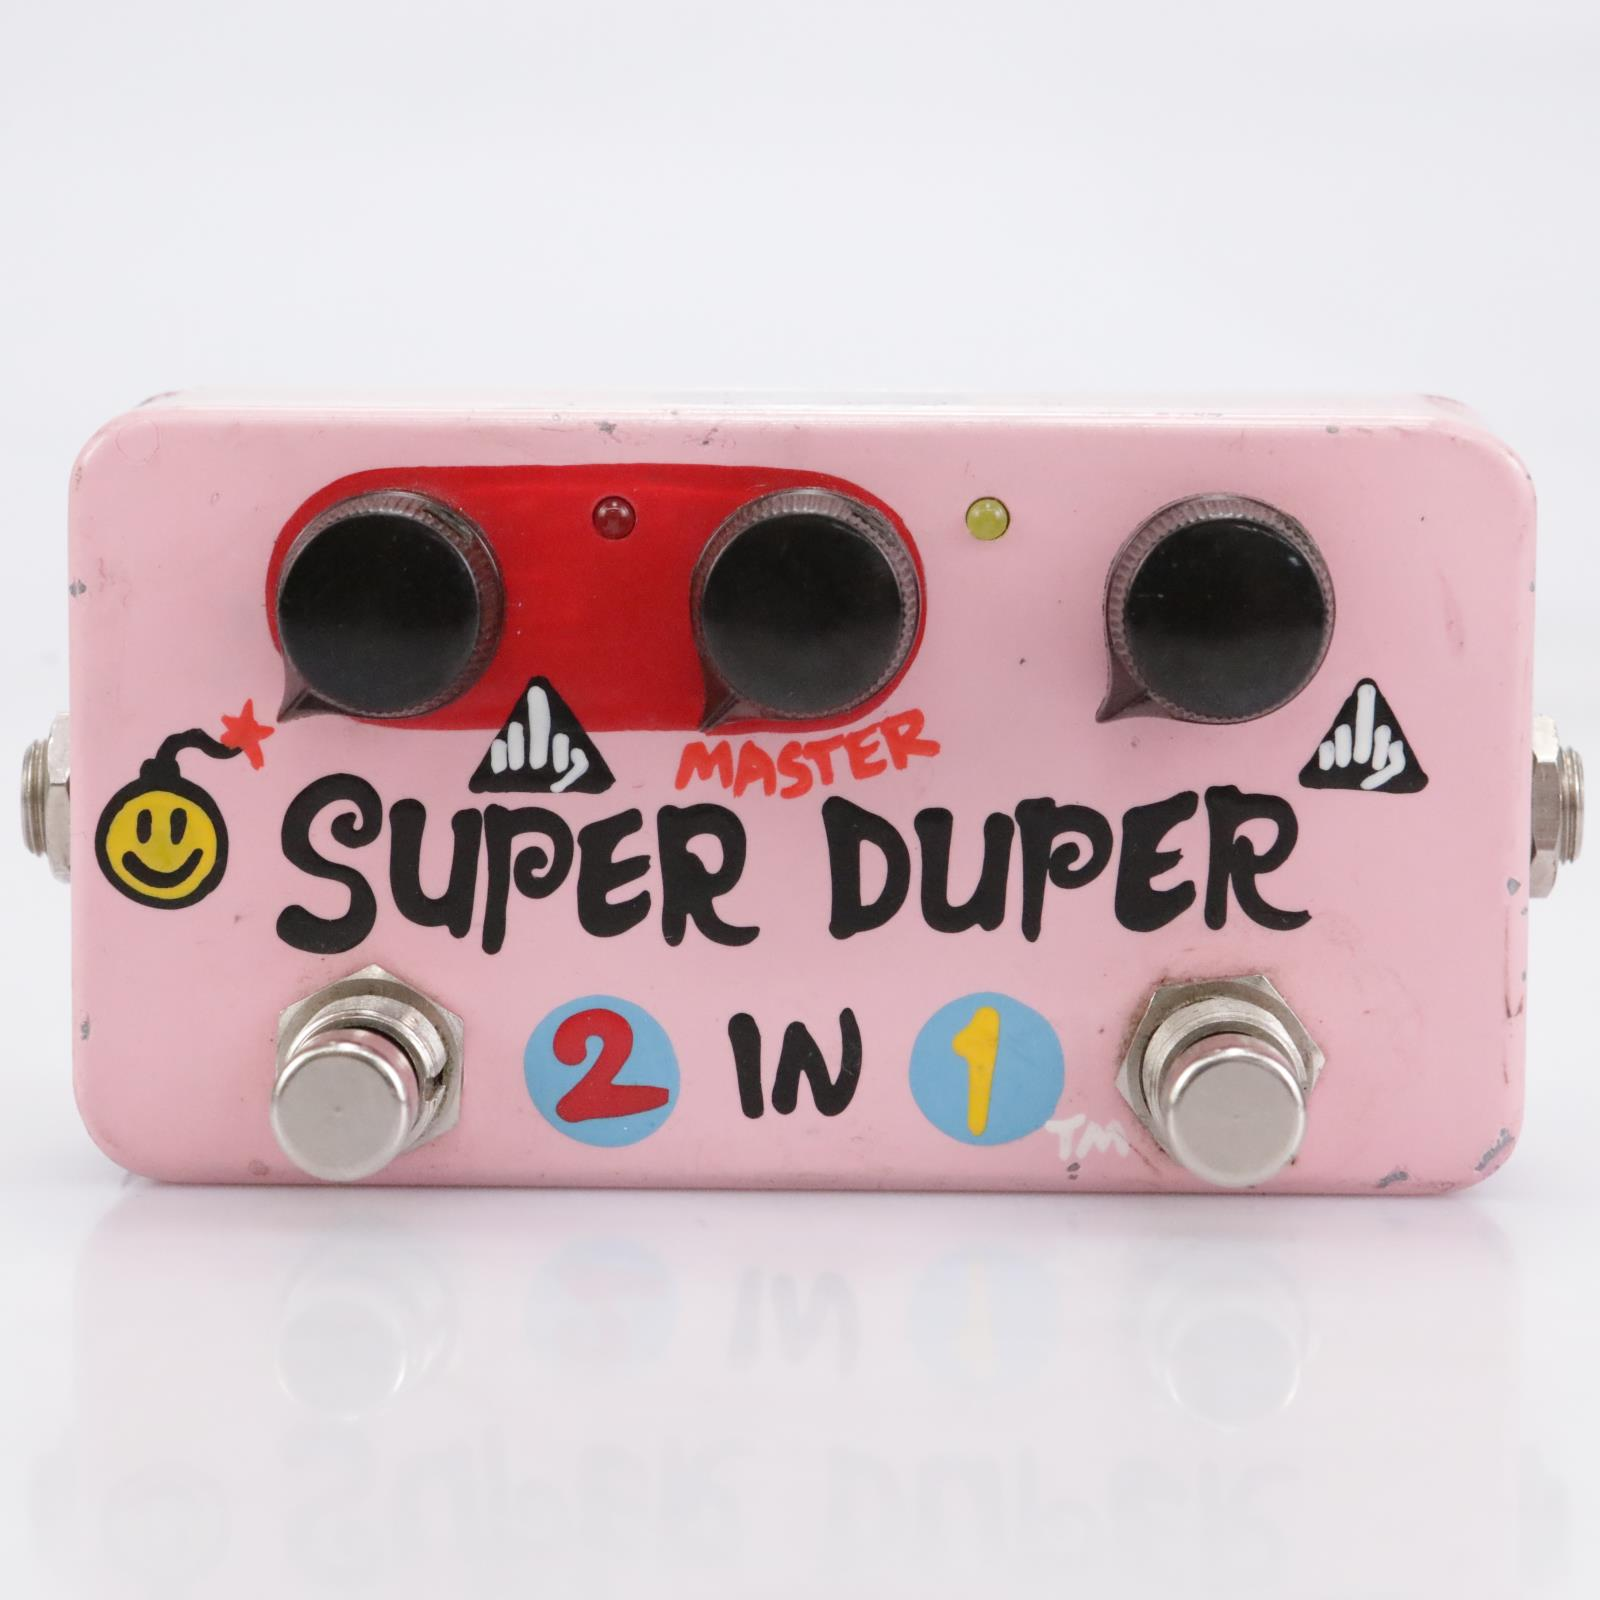 2001 Zvex Super Duper 2-in-1 Overdrive Distortion Pedal Hand-painted #41949